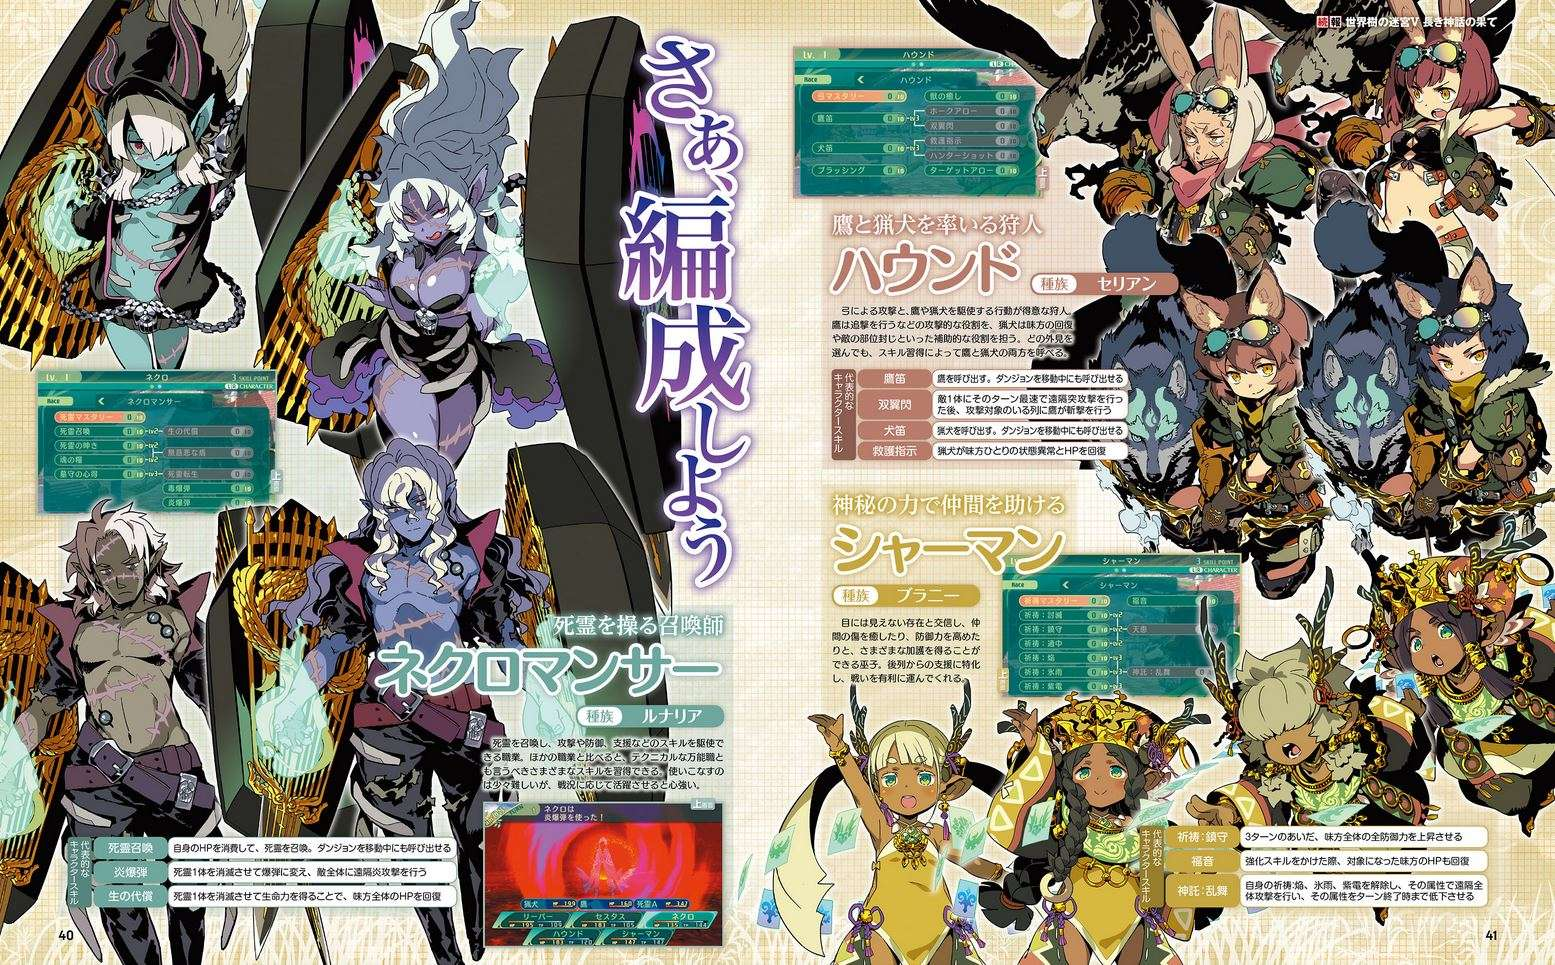 Etrian odyssey v scans feature new class designs [update ...